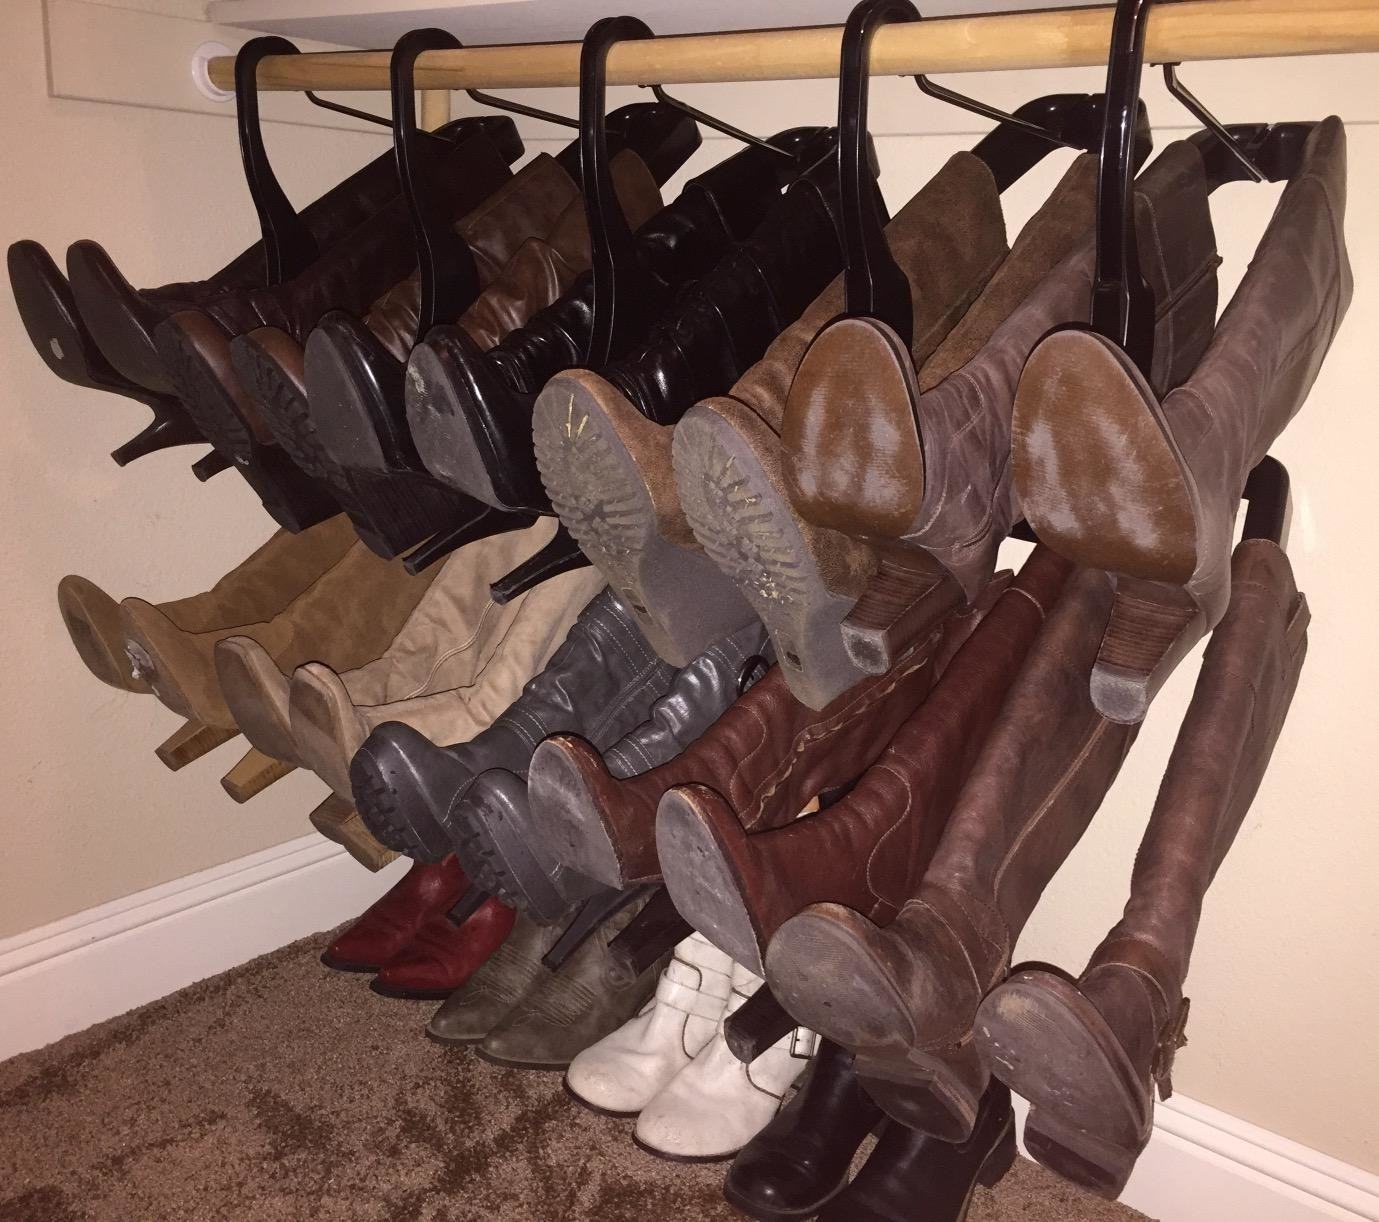 reviewer image of a bunch of boots hanging, taking up less space